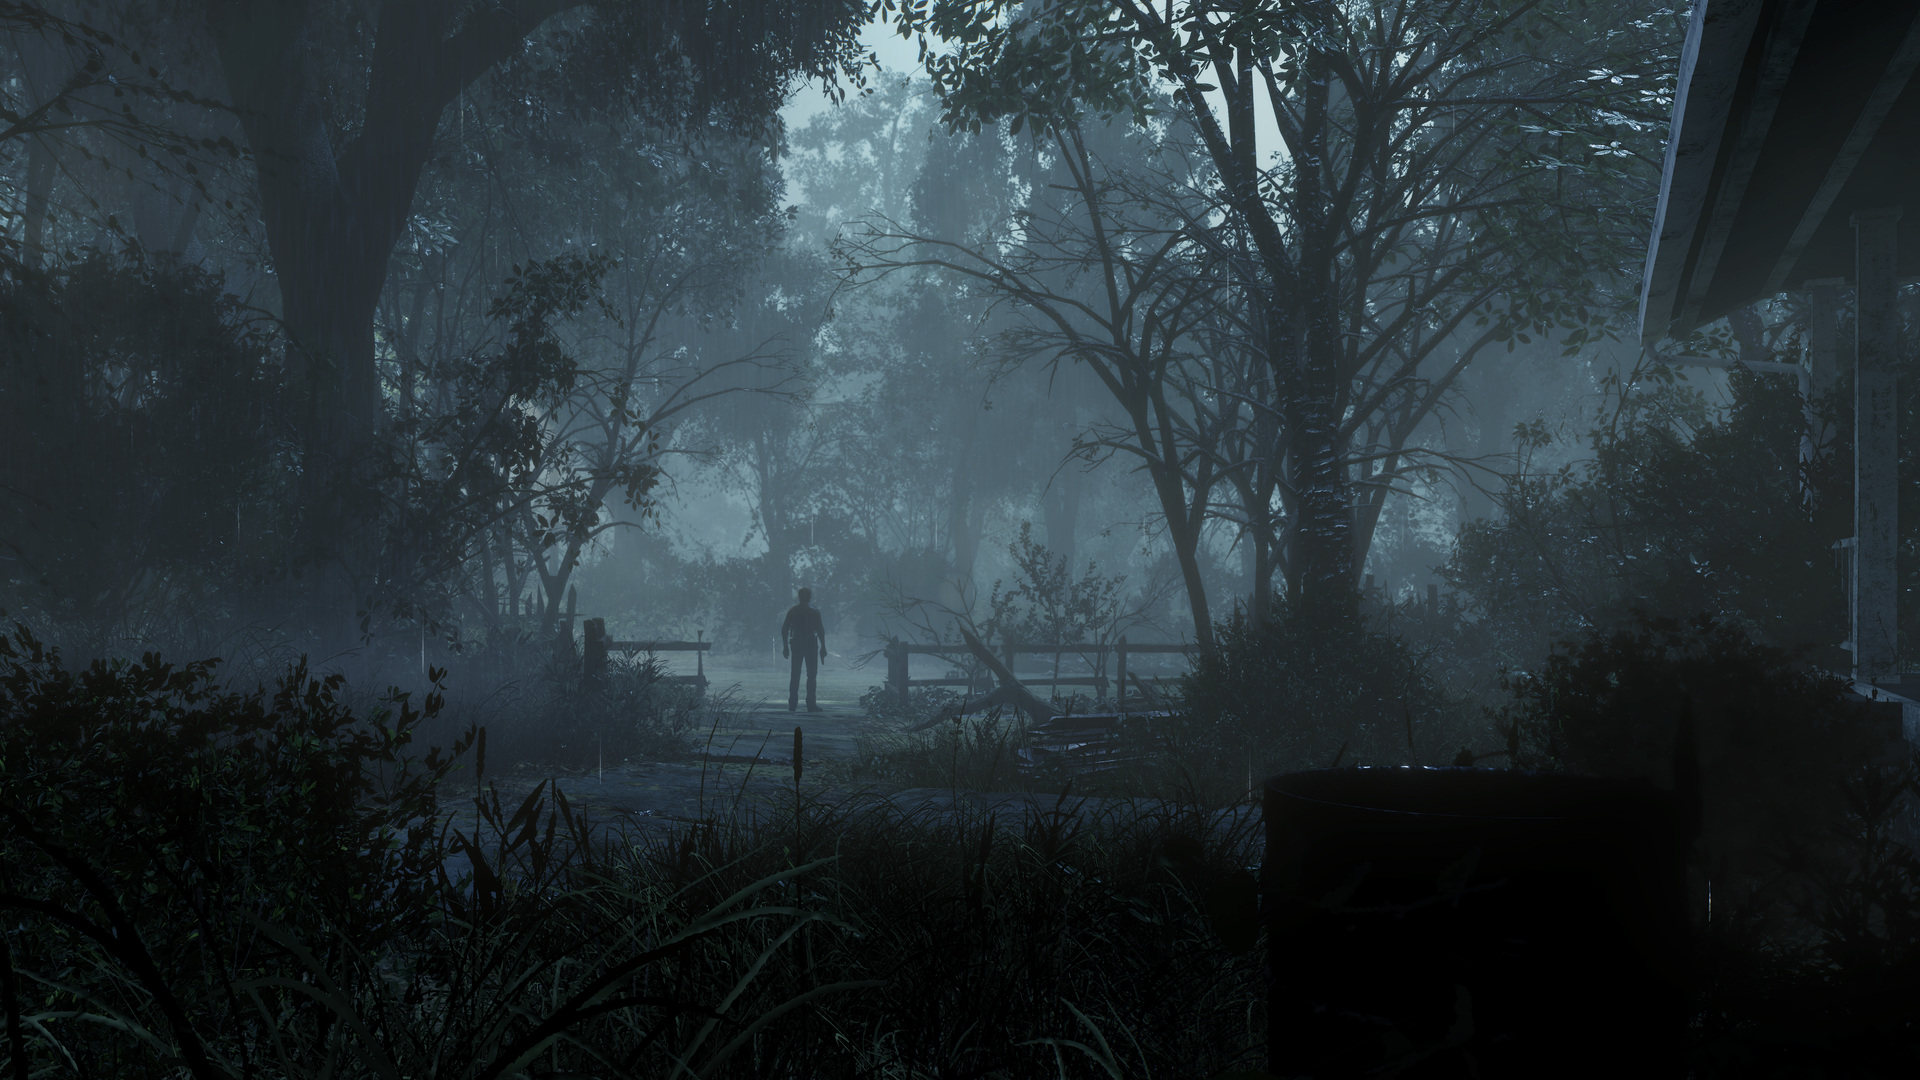 The Evil Within 2 Wallpaper 01 1920x1080: 1920x1080 2018 The Evil Within 2 8k Laptop Full HD 1080P